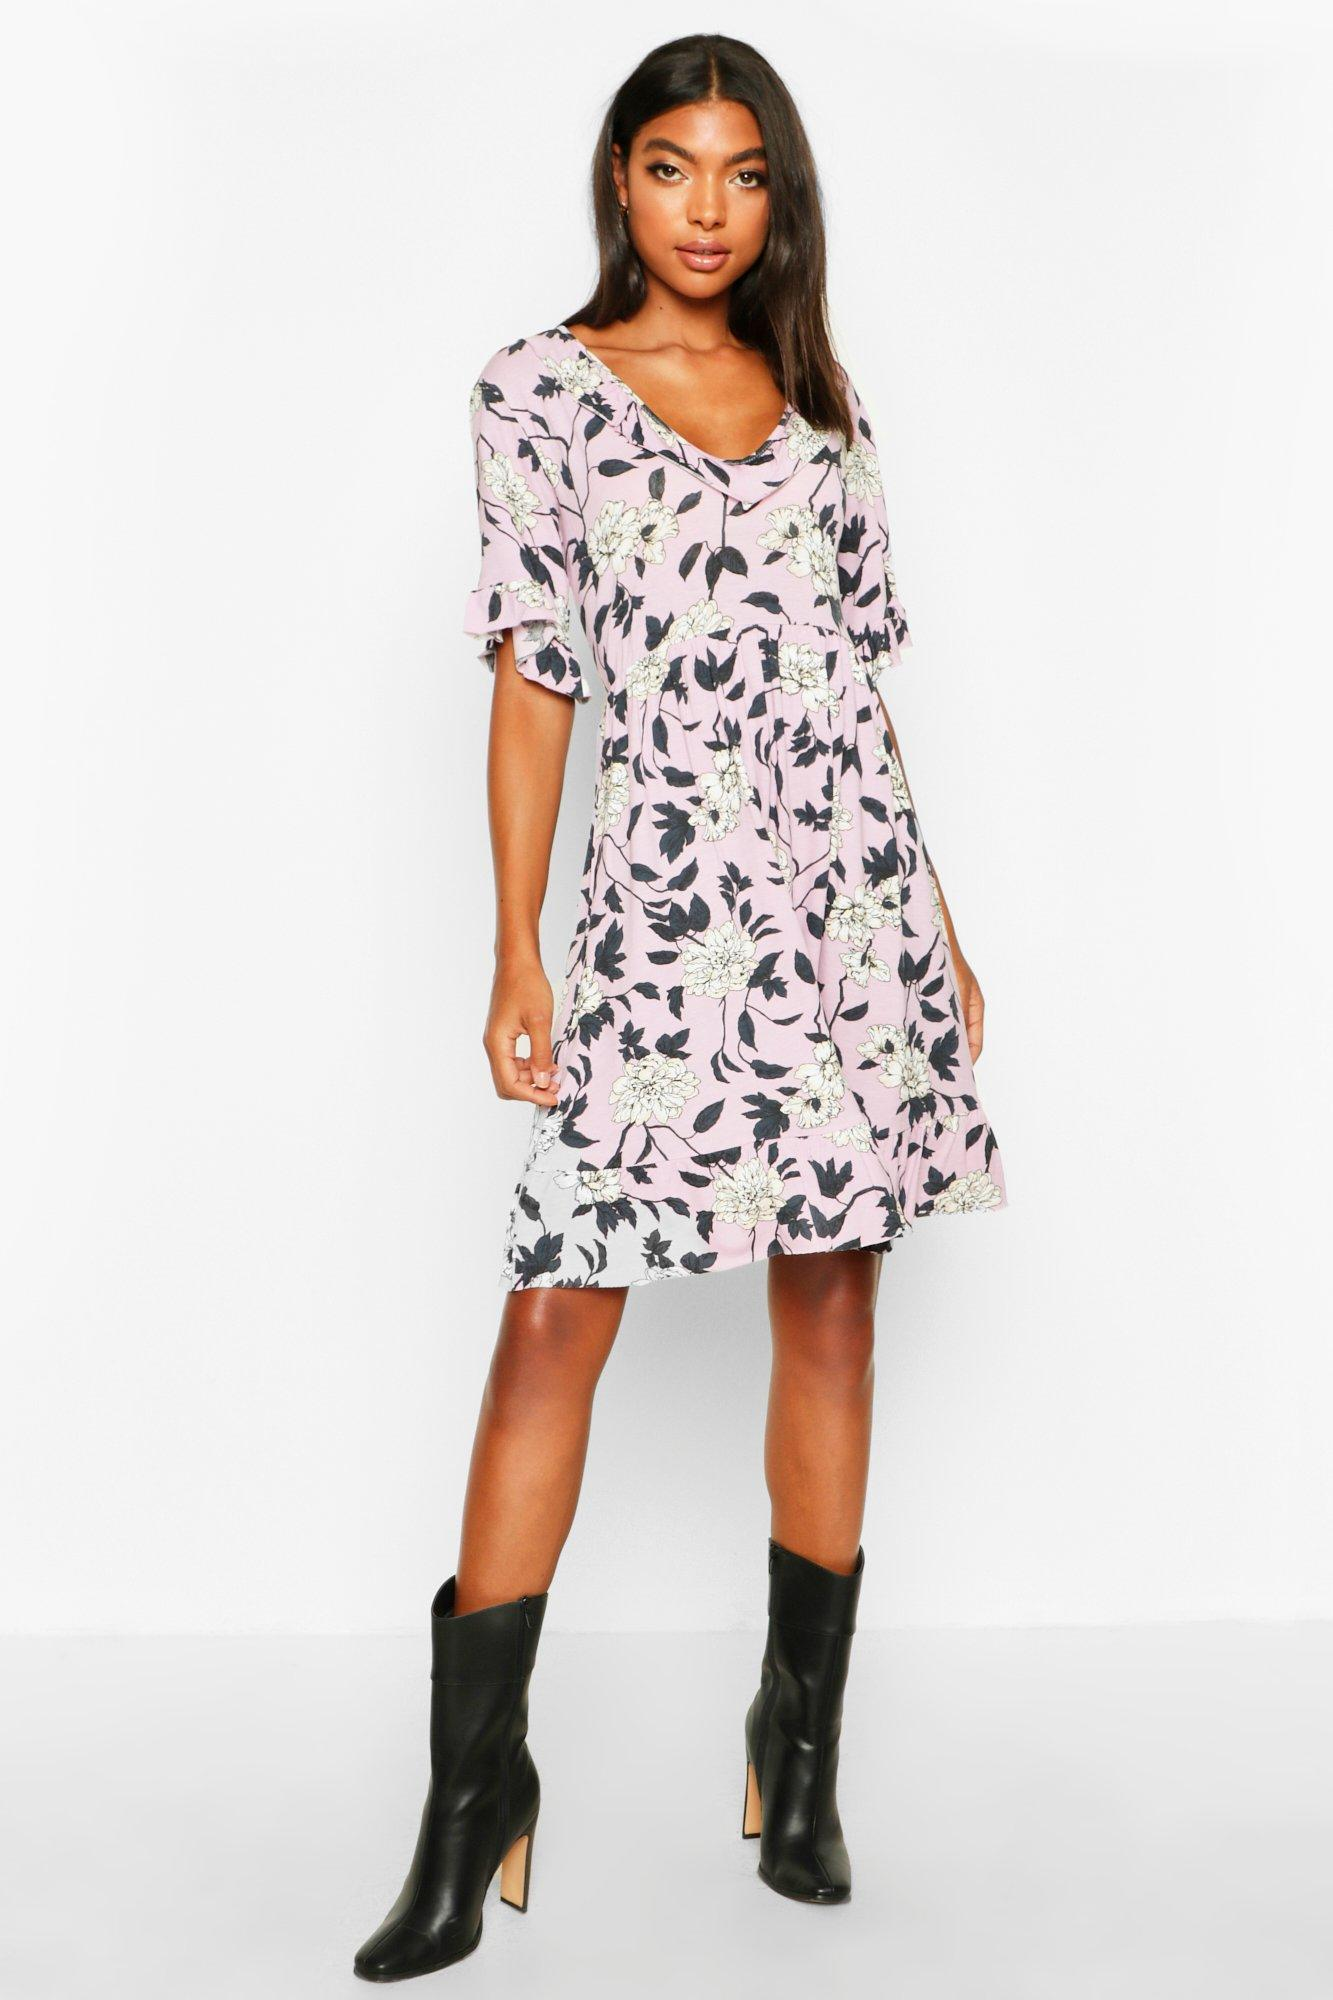 £5 Dresses Tall Plunge Ruffle Floral Smock Dress